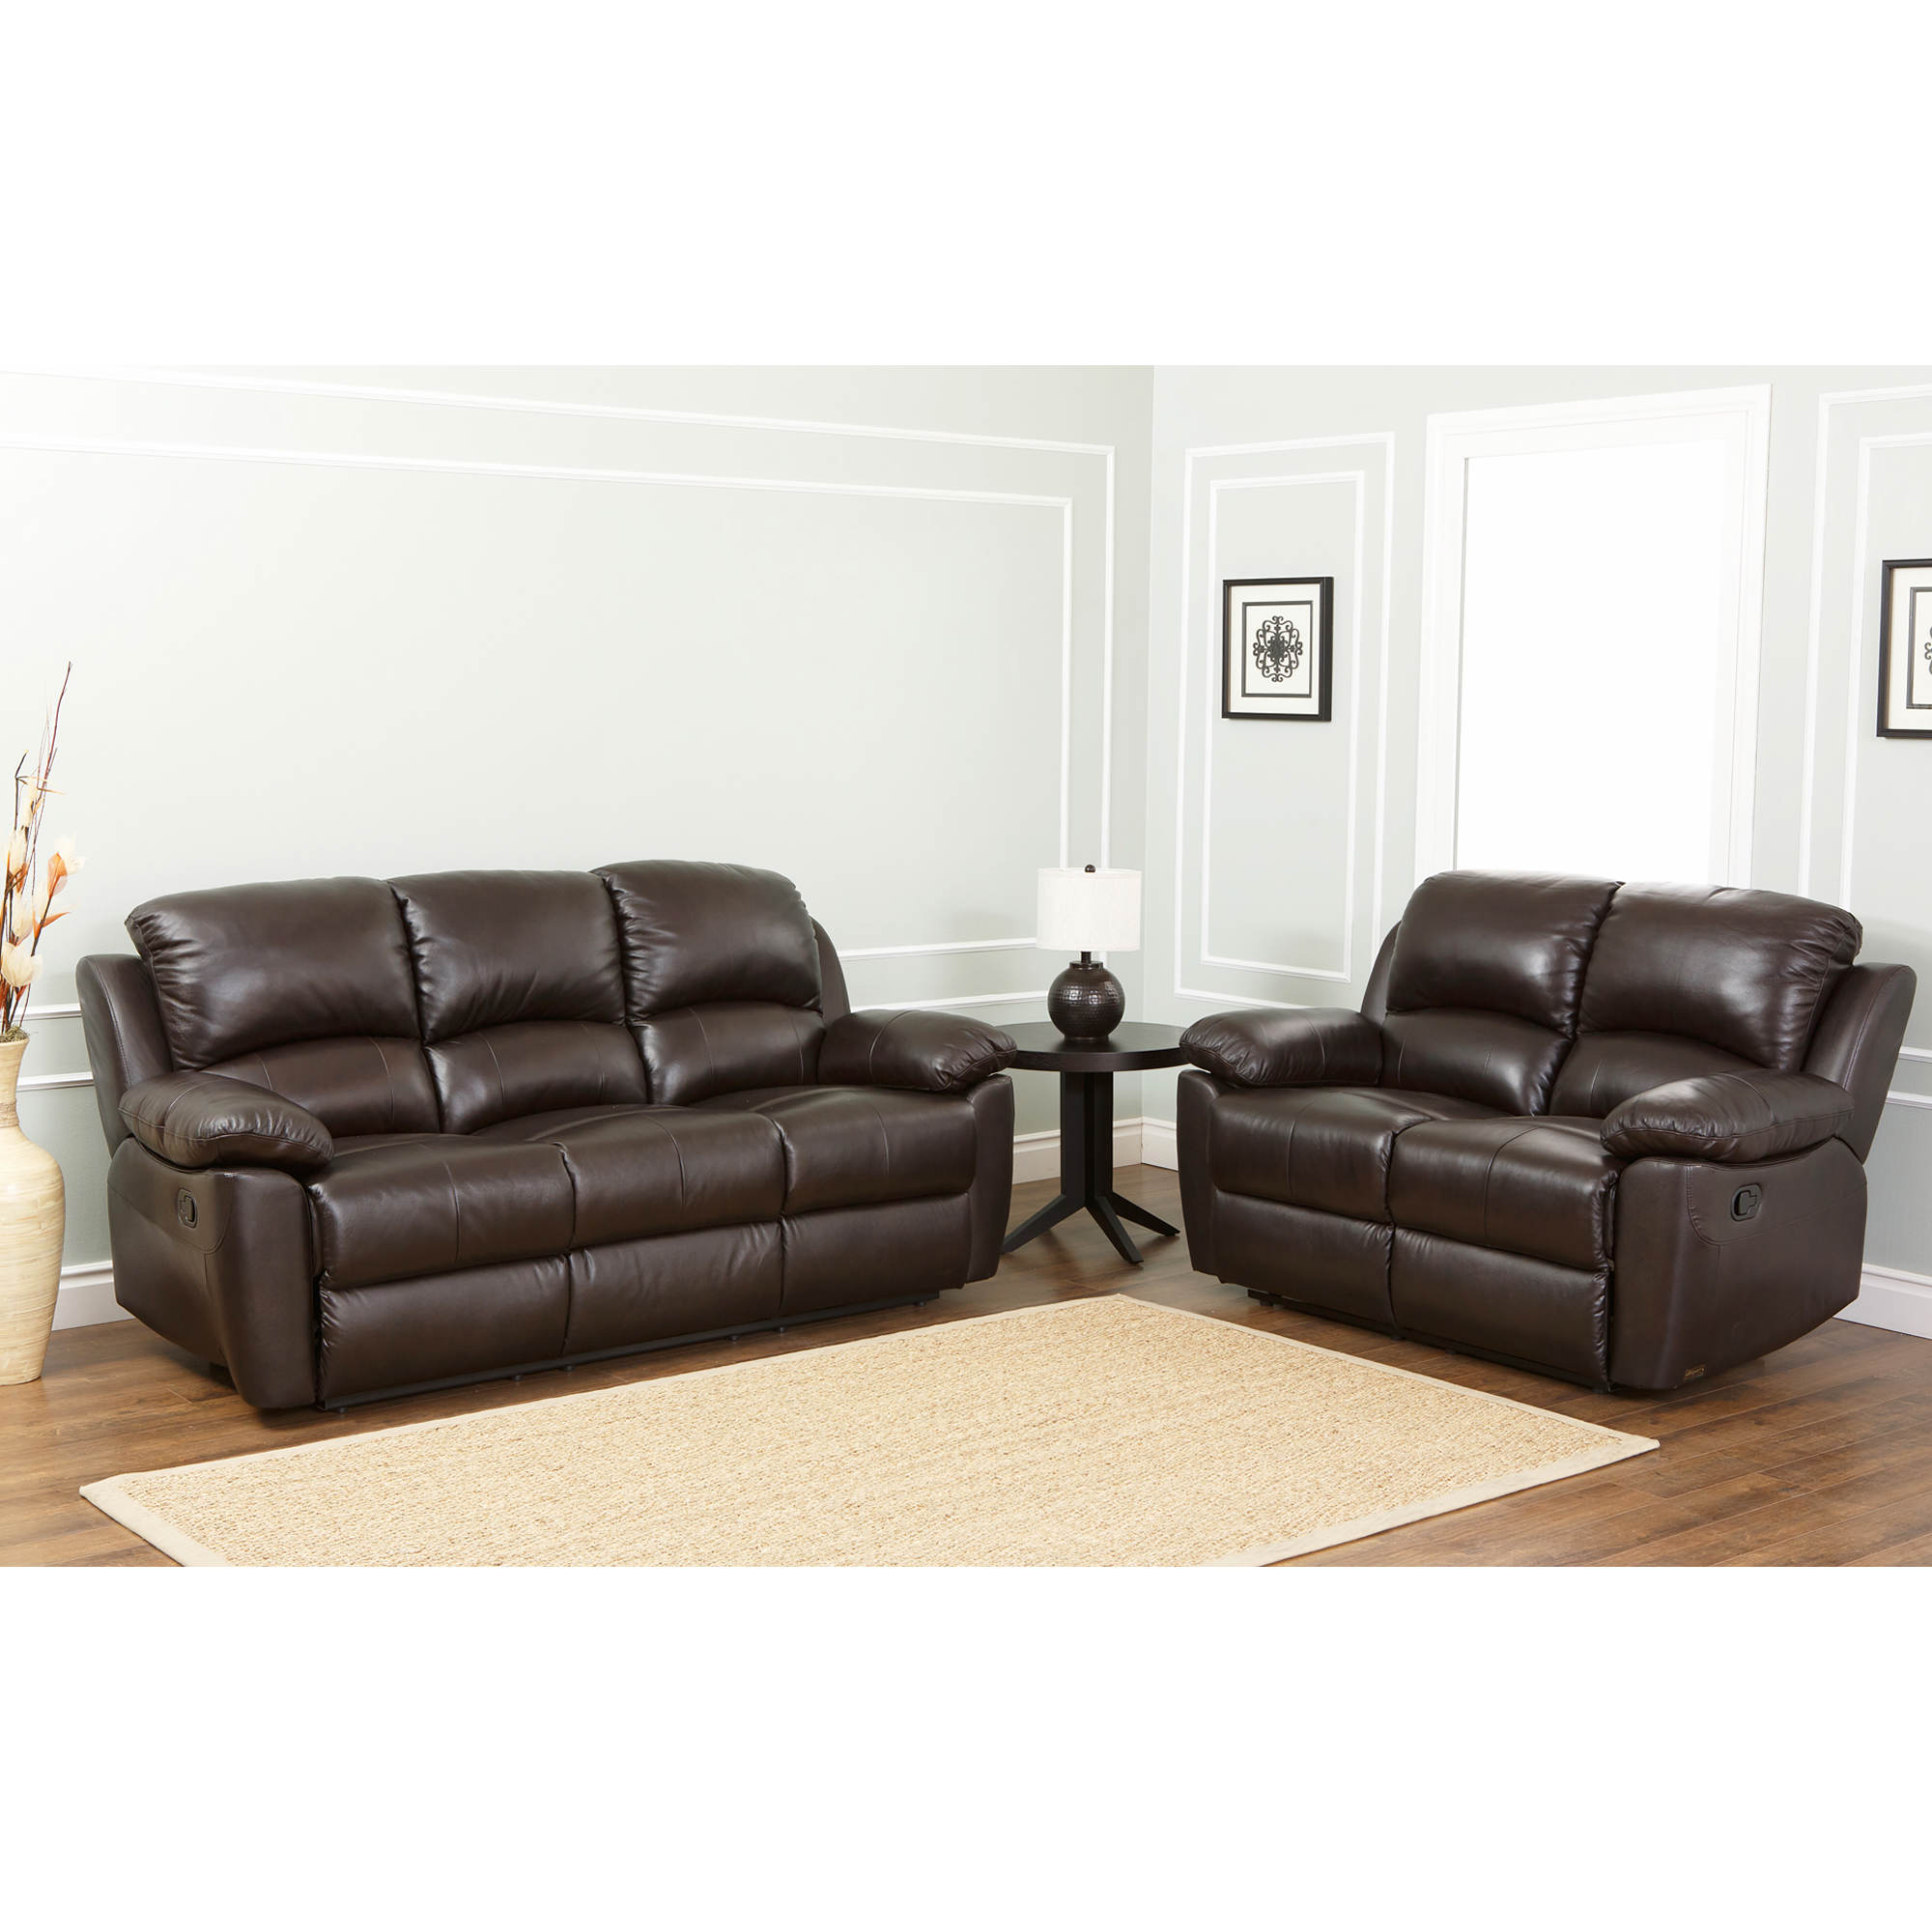 Abbyson living toscana reclining sofa and loveseat espresso brown